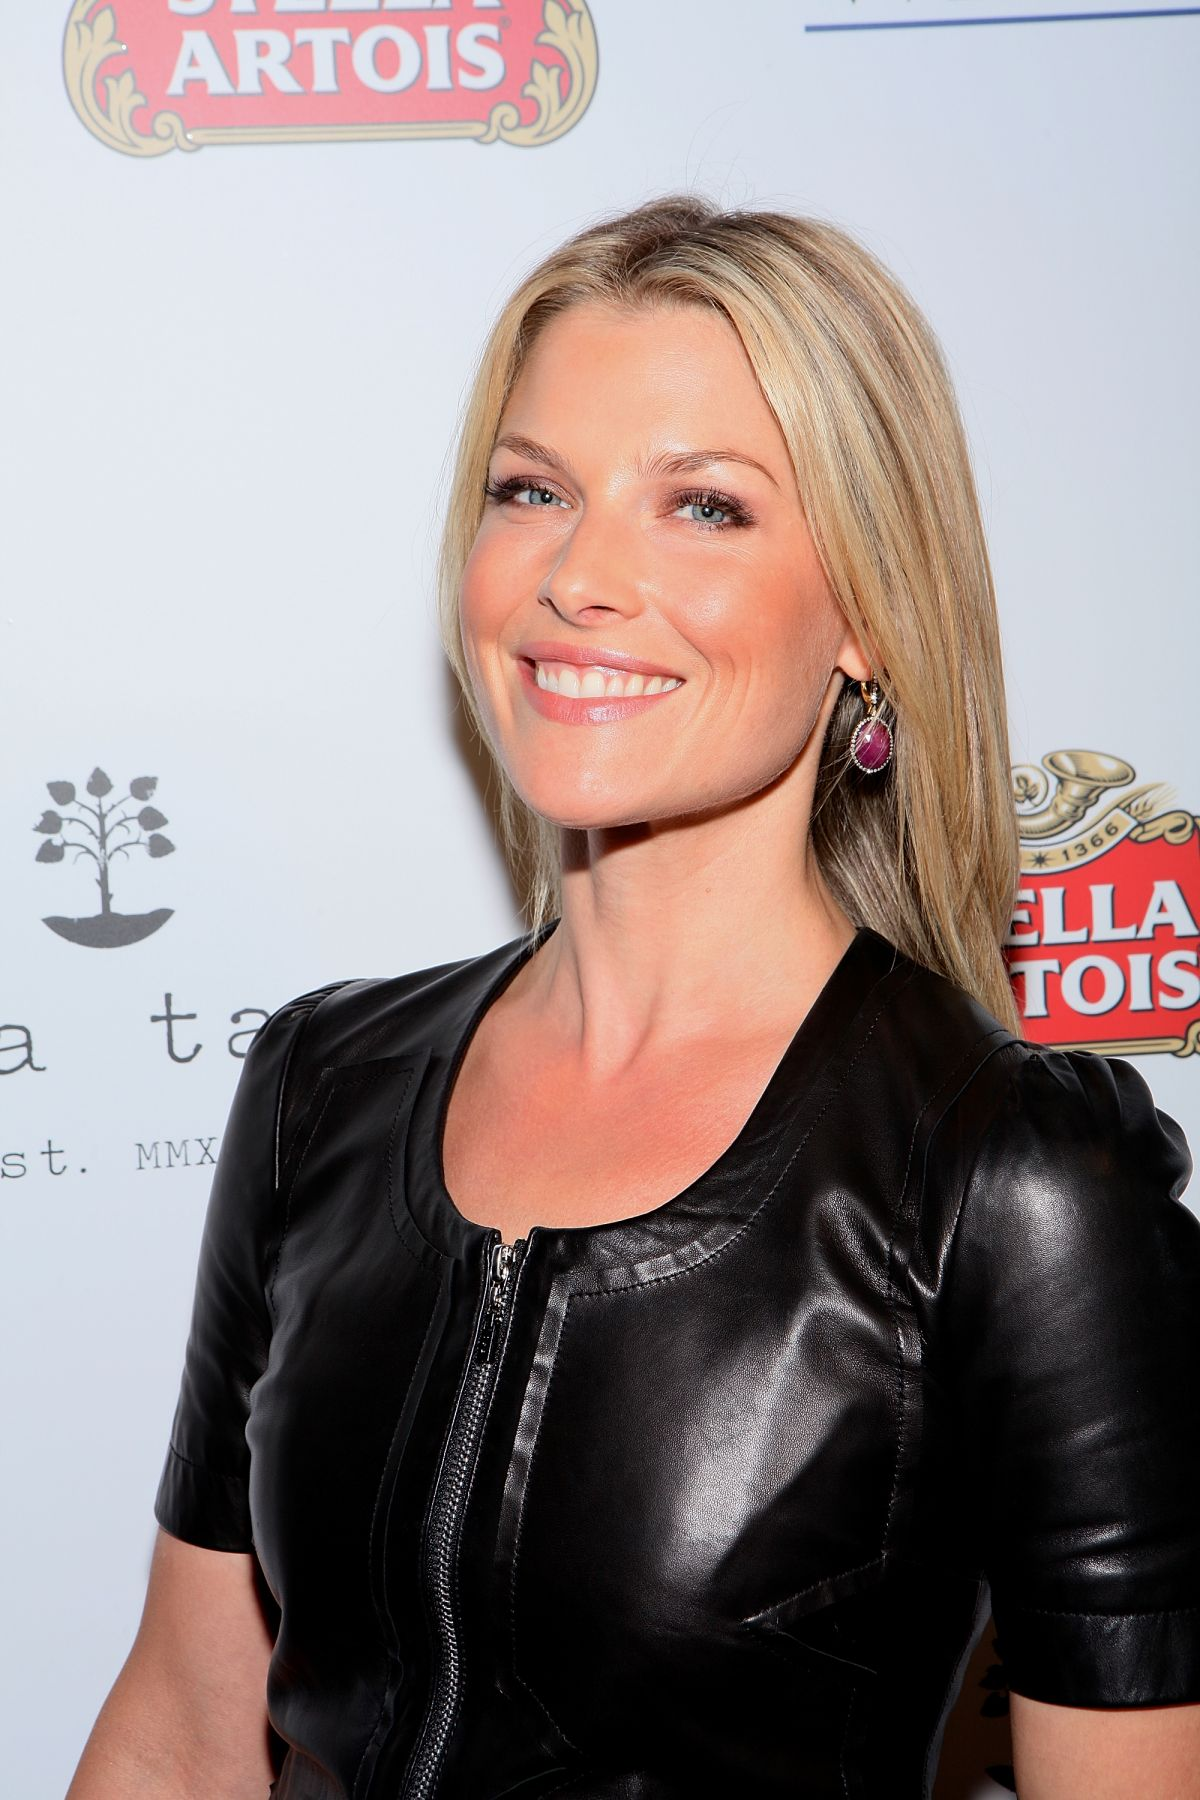 Ali Larter At Michigan Avenue Magazine Sept Issue Celebration In Chicago